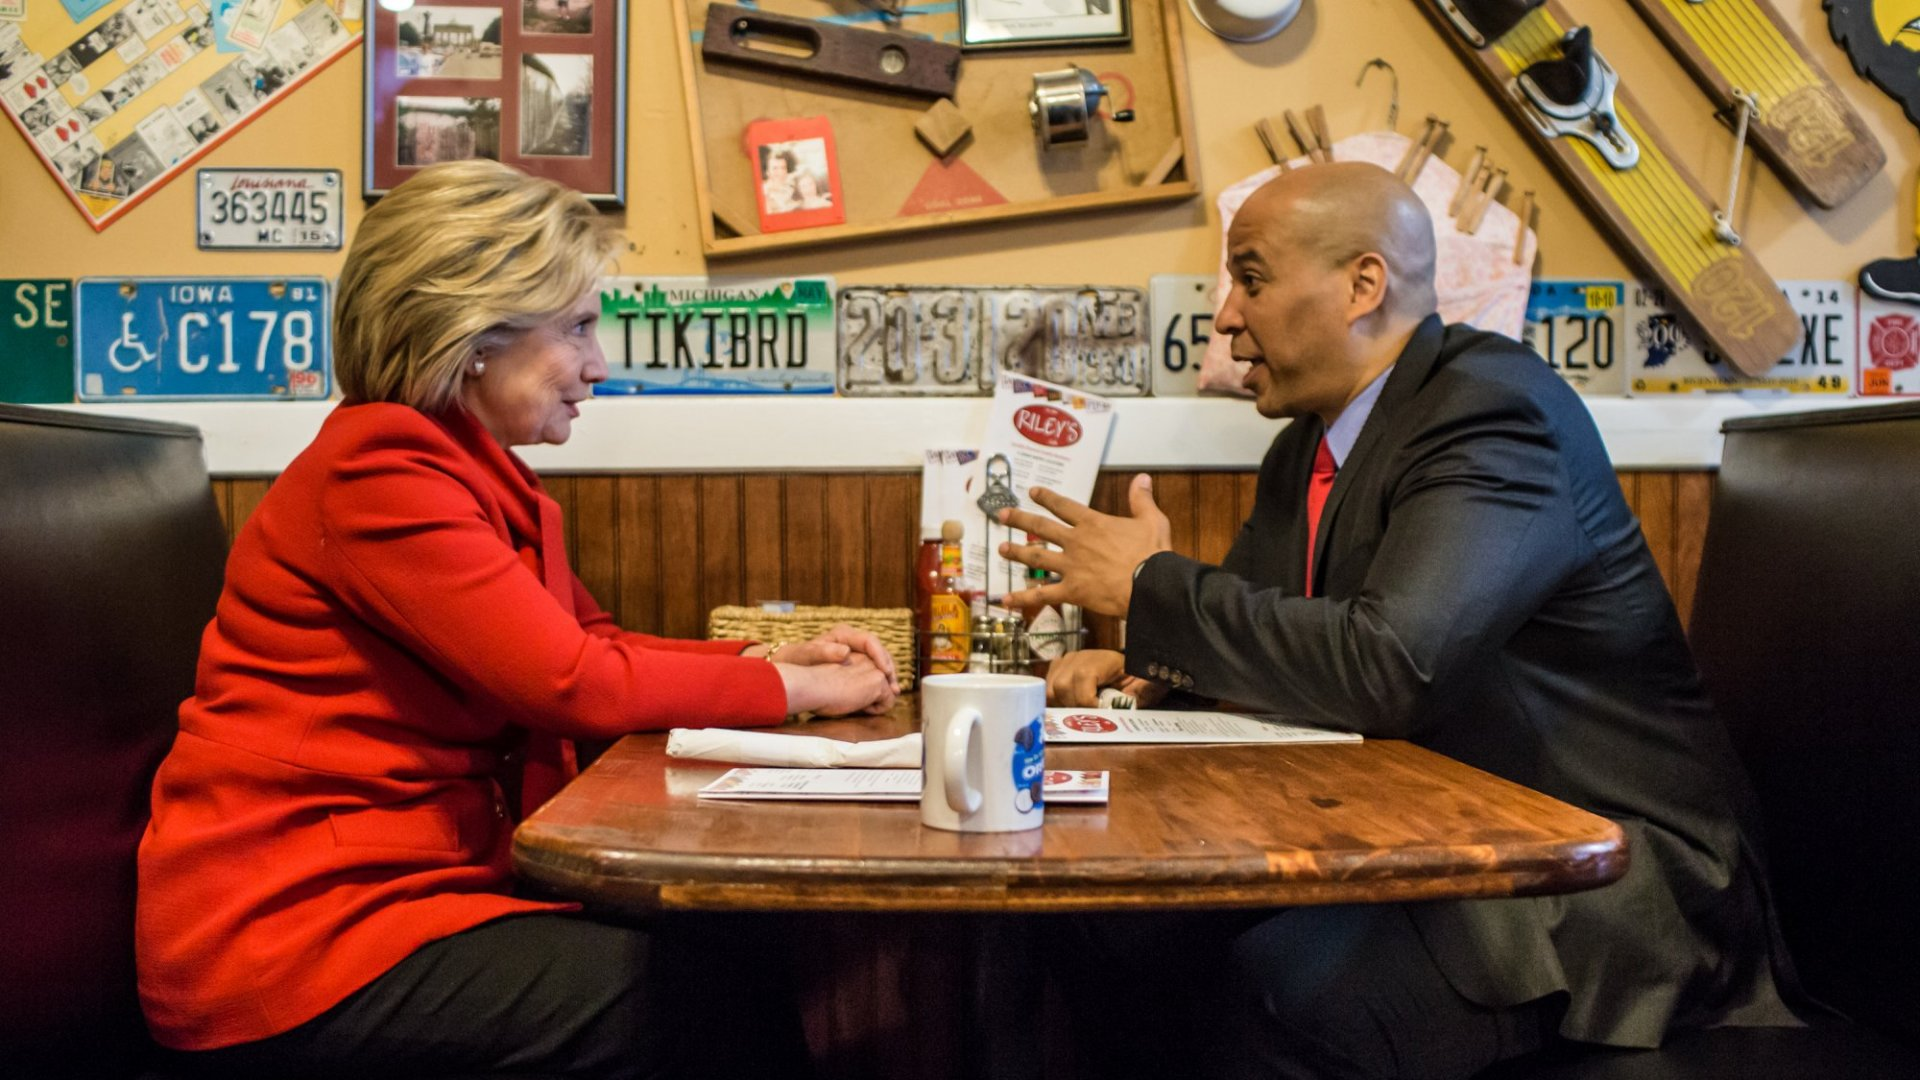 Democratic presidential candidate Hillary Clinton (L) talks with Sen. Cory Booker (D-NJ) at Riley's Cafe on January 24, 2016 in Cedar Rapids, Iowa. (Photo by Brendan Hoffman/Getty Images)